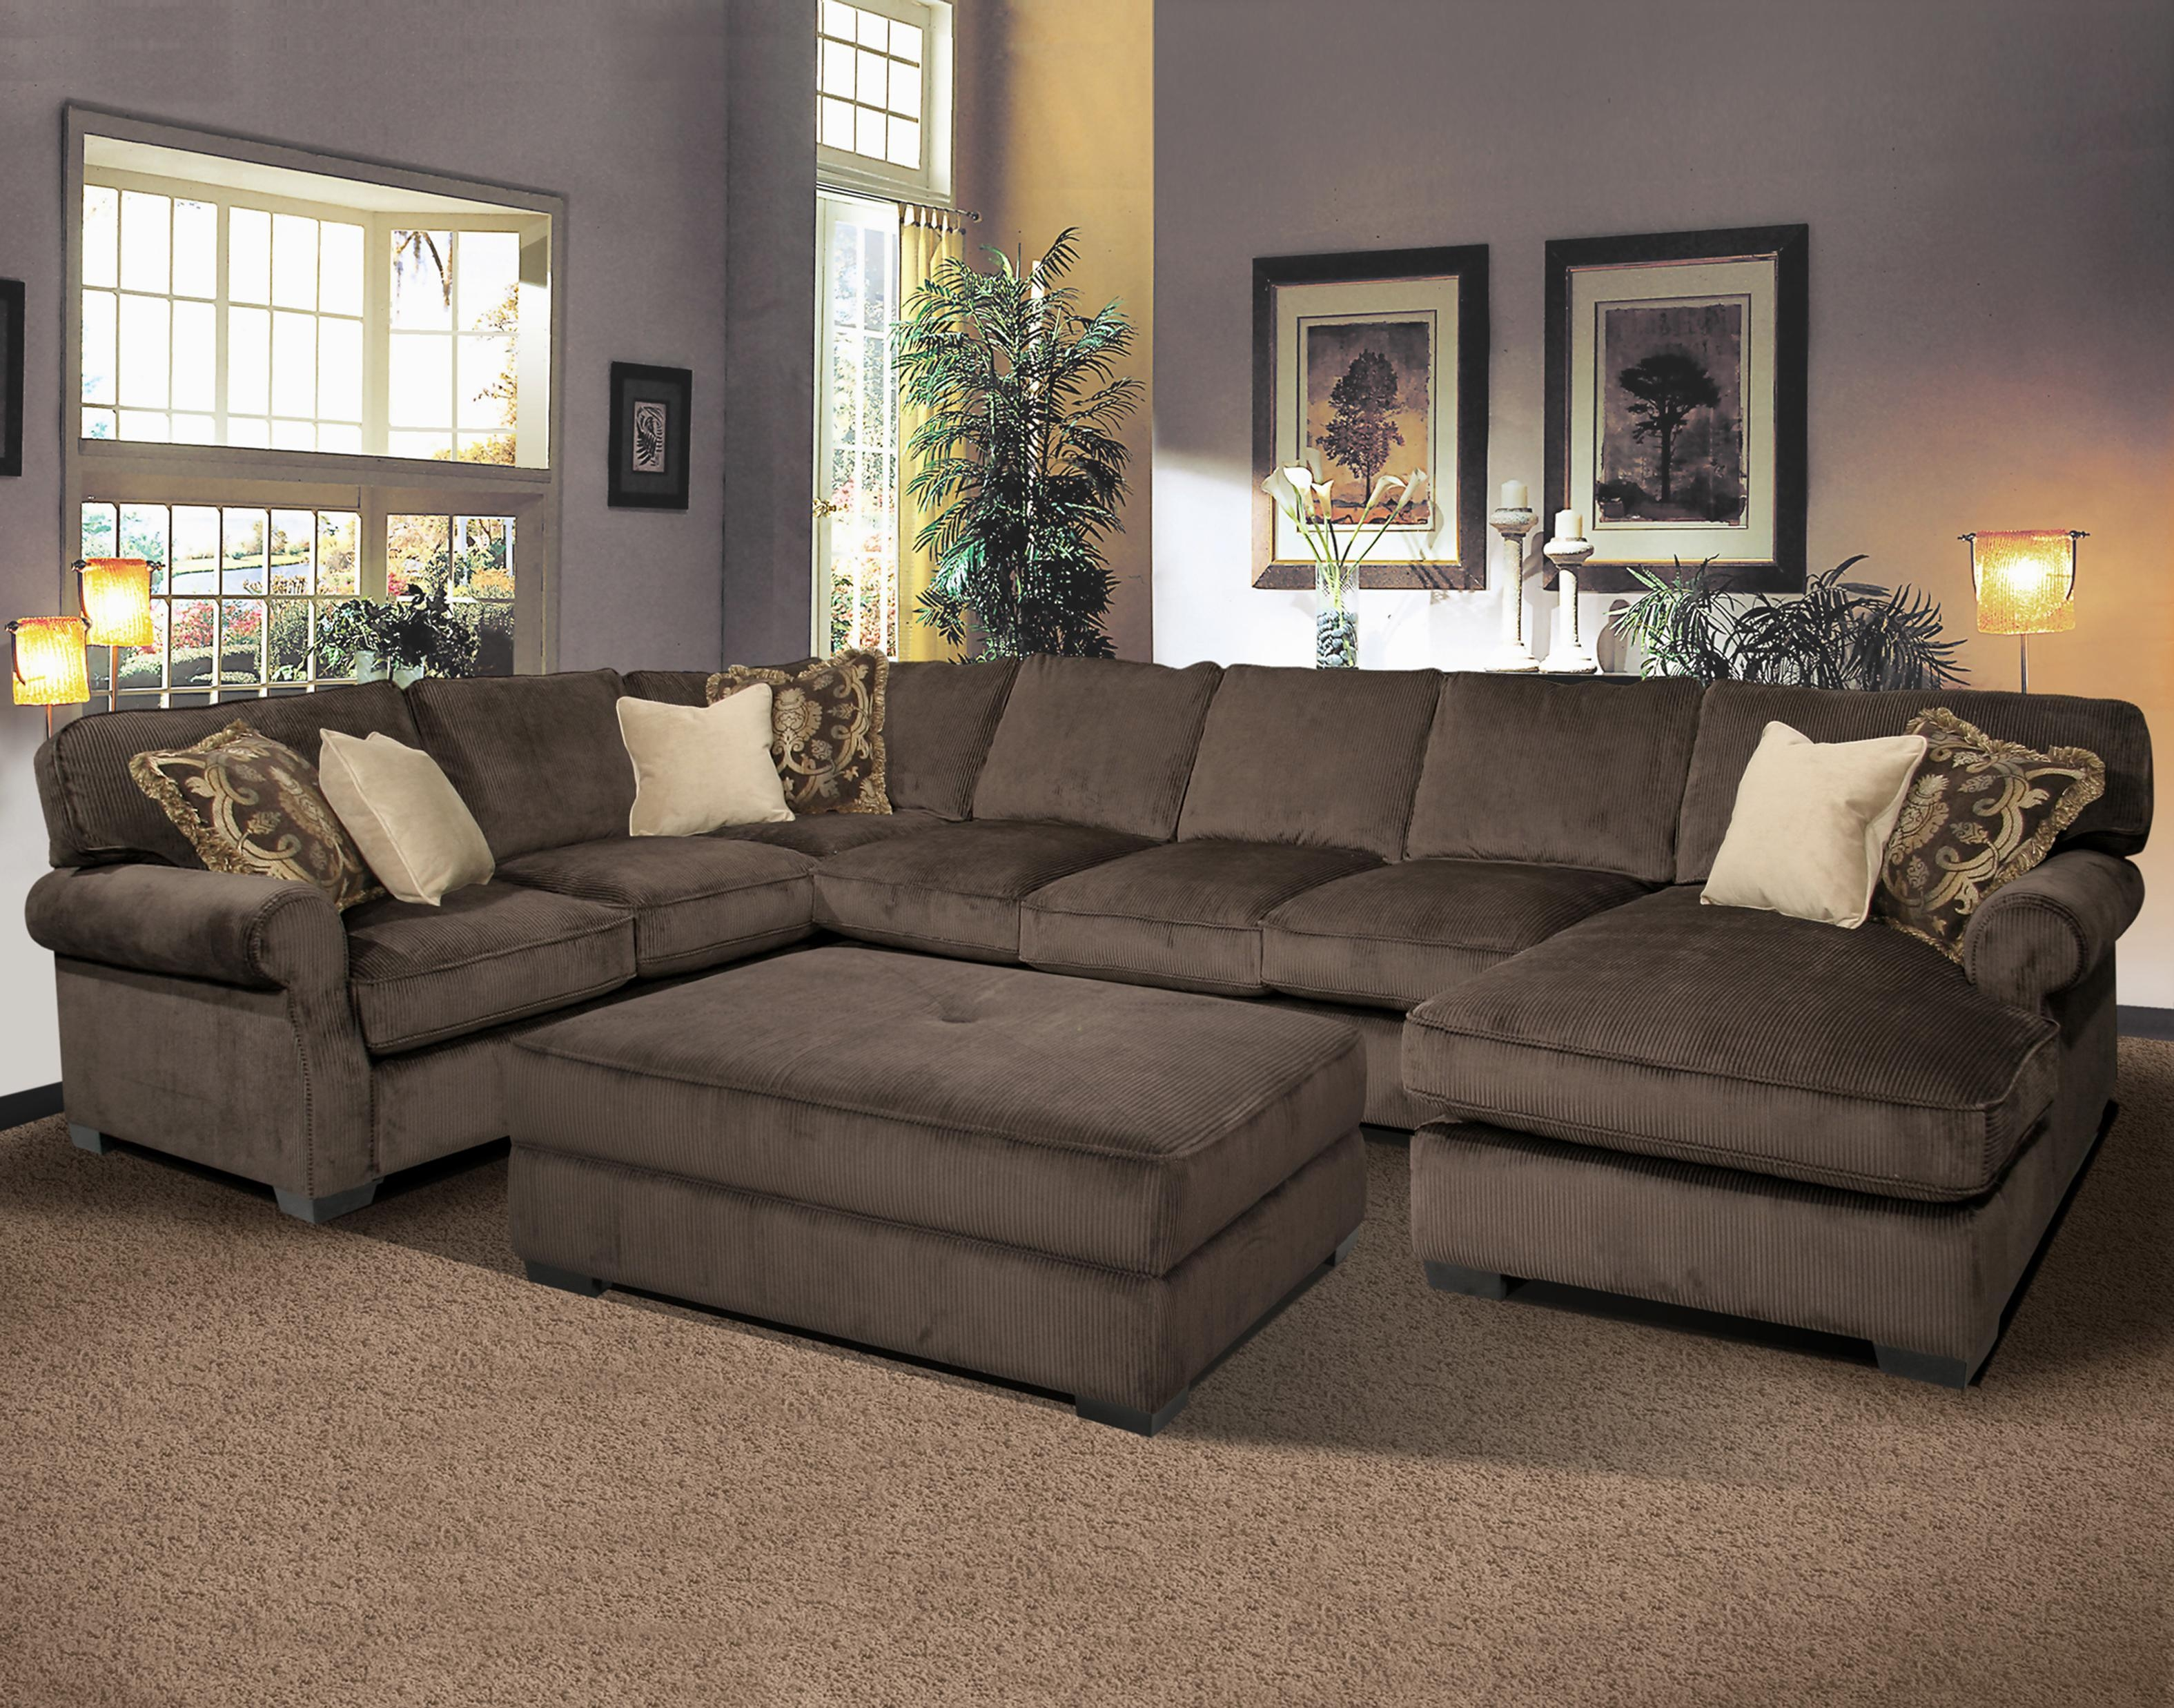 Most Comfortable Modern Sectionals Comfortable Sectional Sofa The 19 Most Comfortable Couches